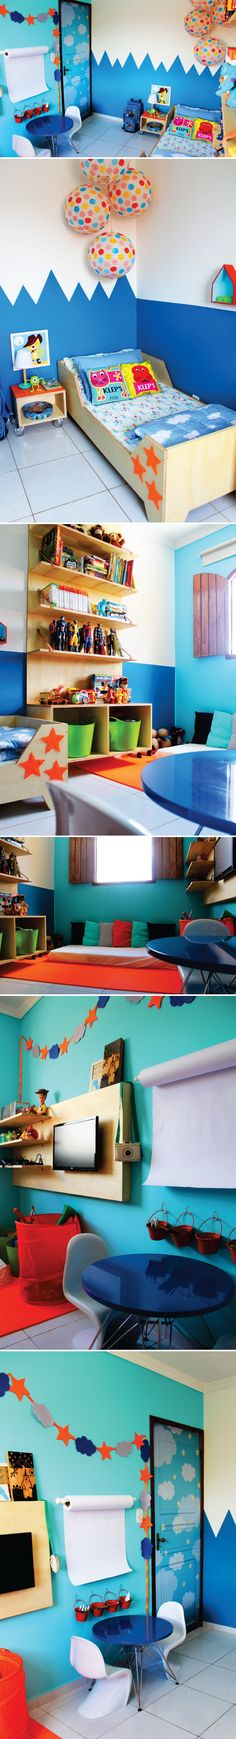 Dream bedroom for kids - colorful - diy - Brazil